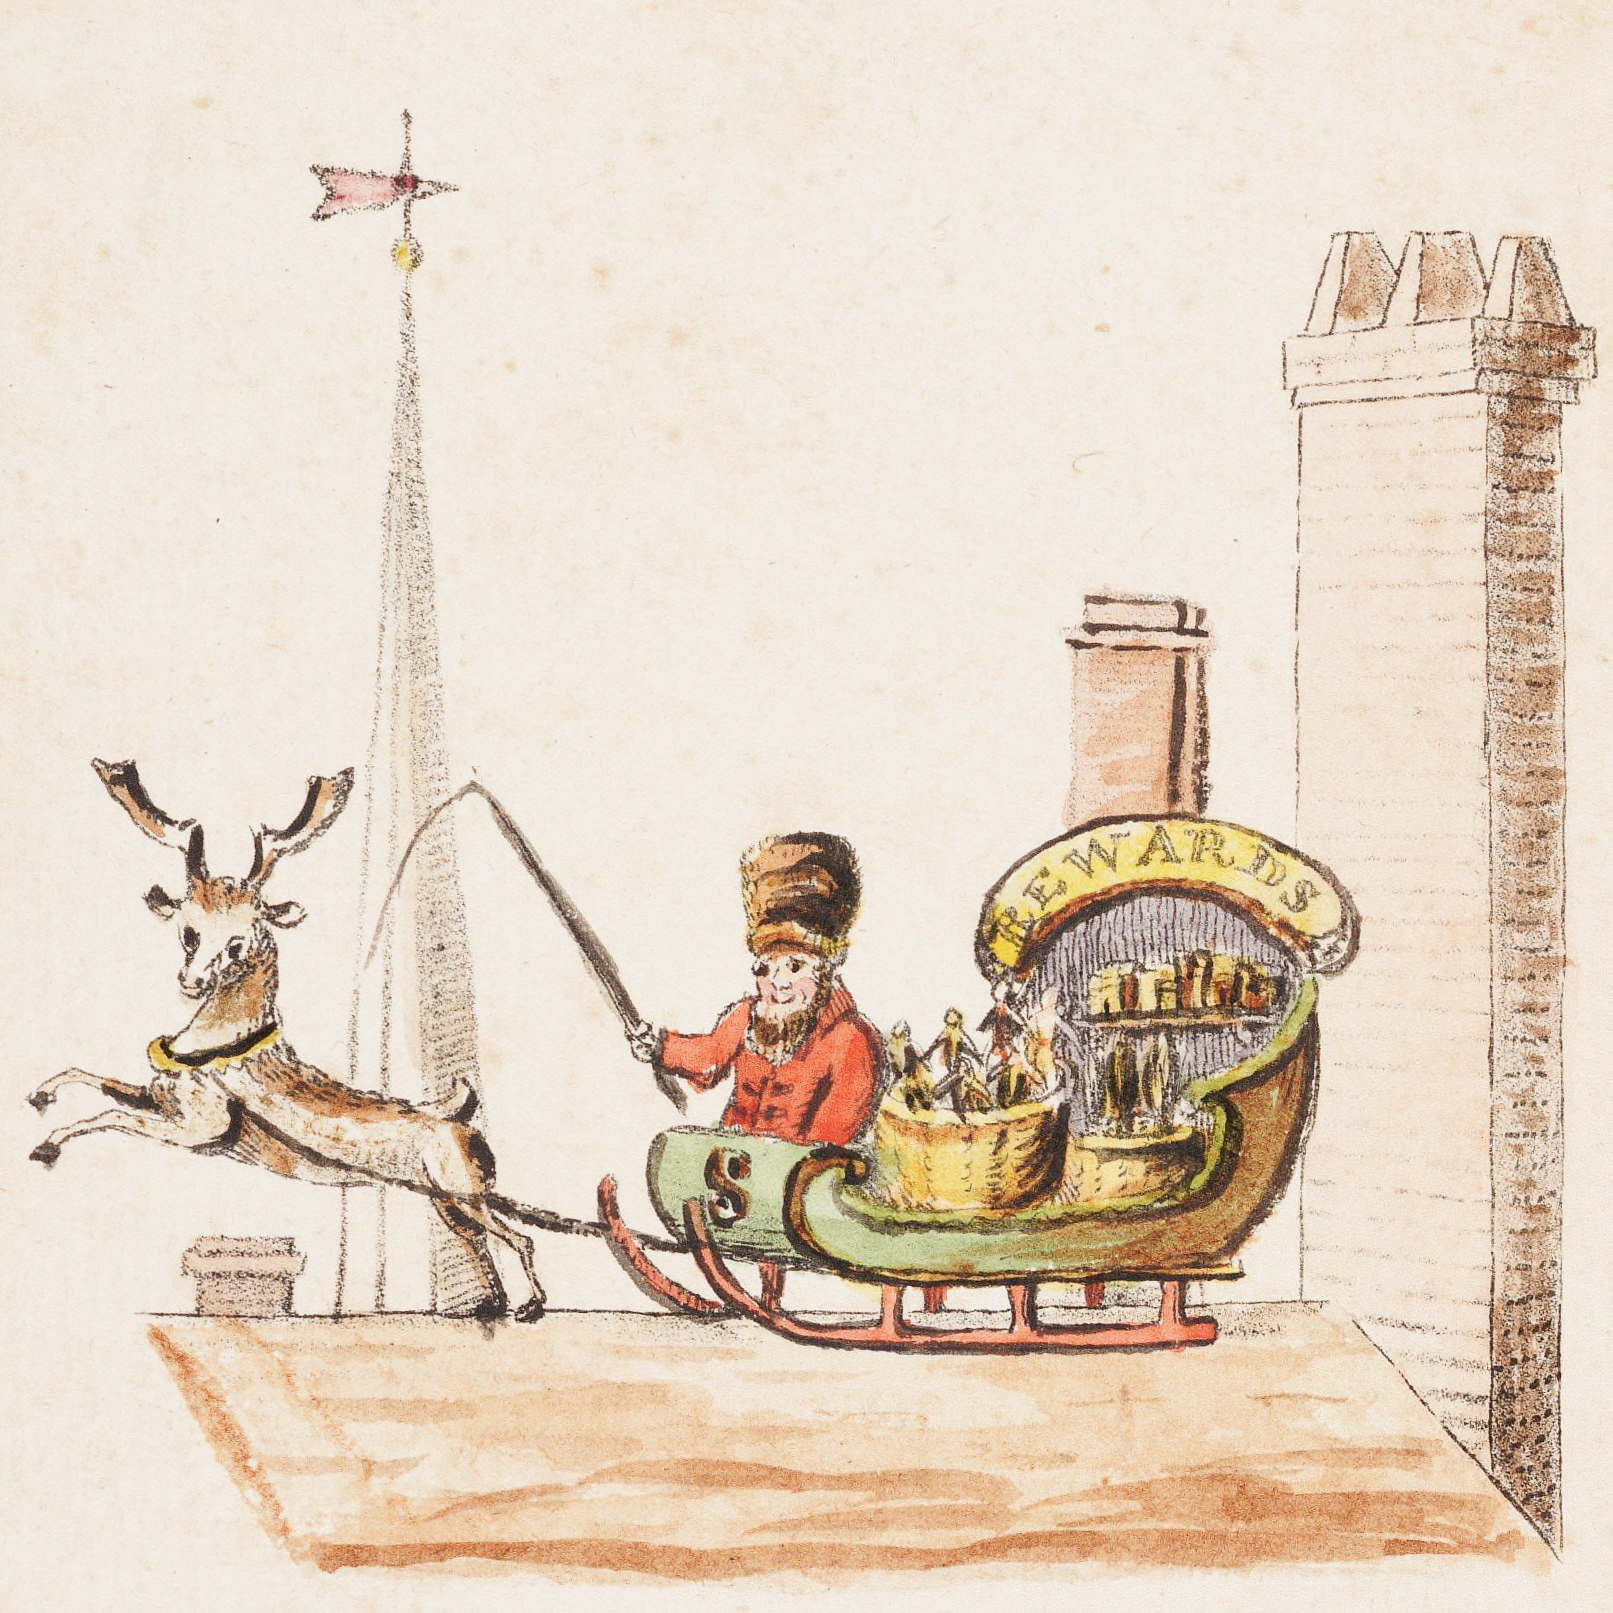 Illustration to verse 1 of the children's poem Old Santeclaus with Much Delight, 1821.